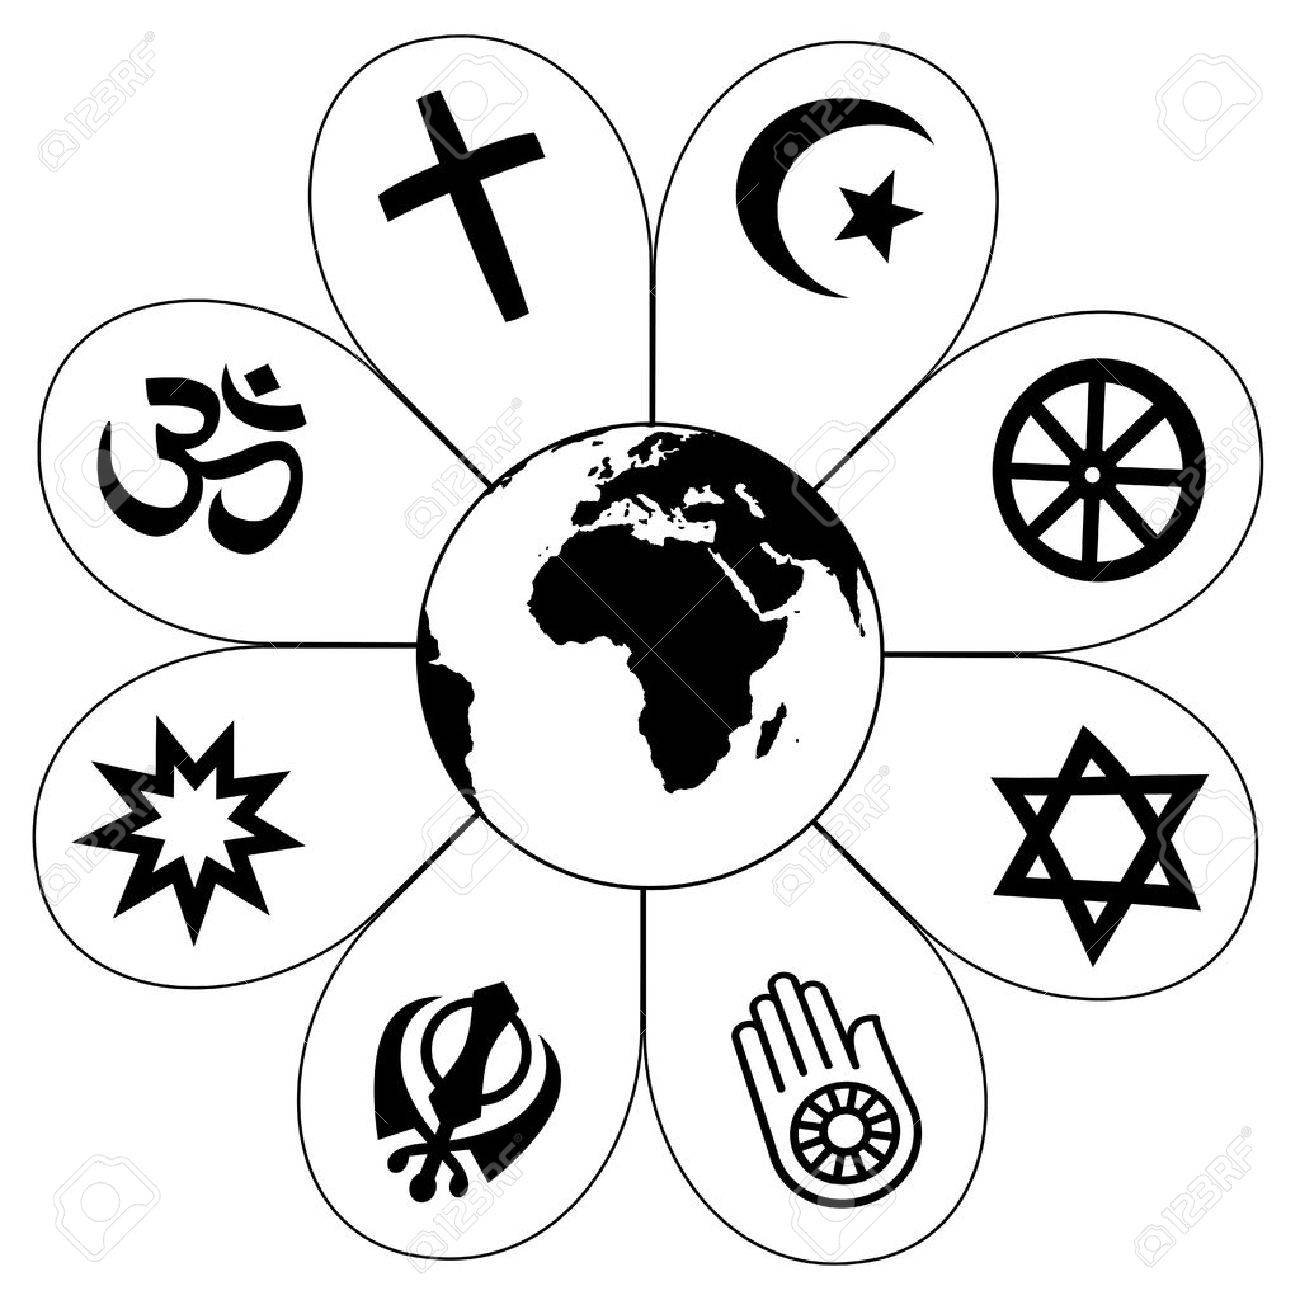 World Religions Flower Icon Made Of Religious Symbols And Planet